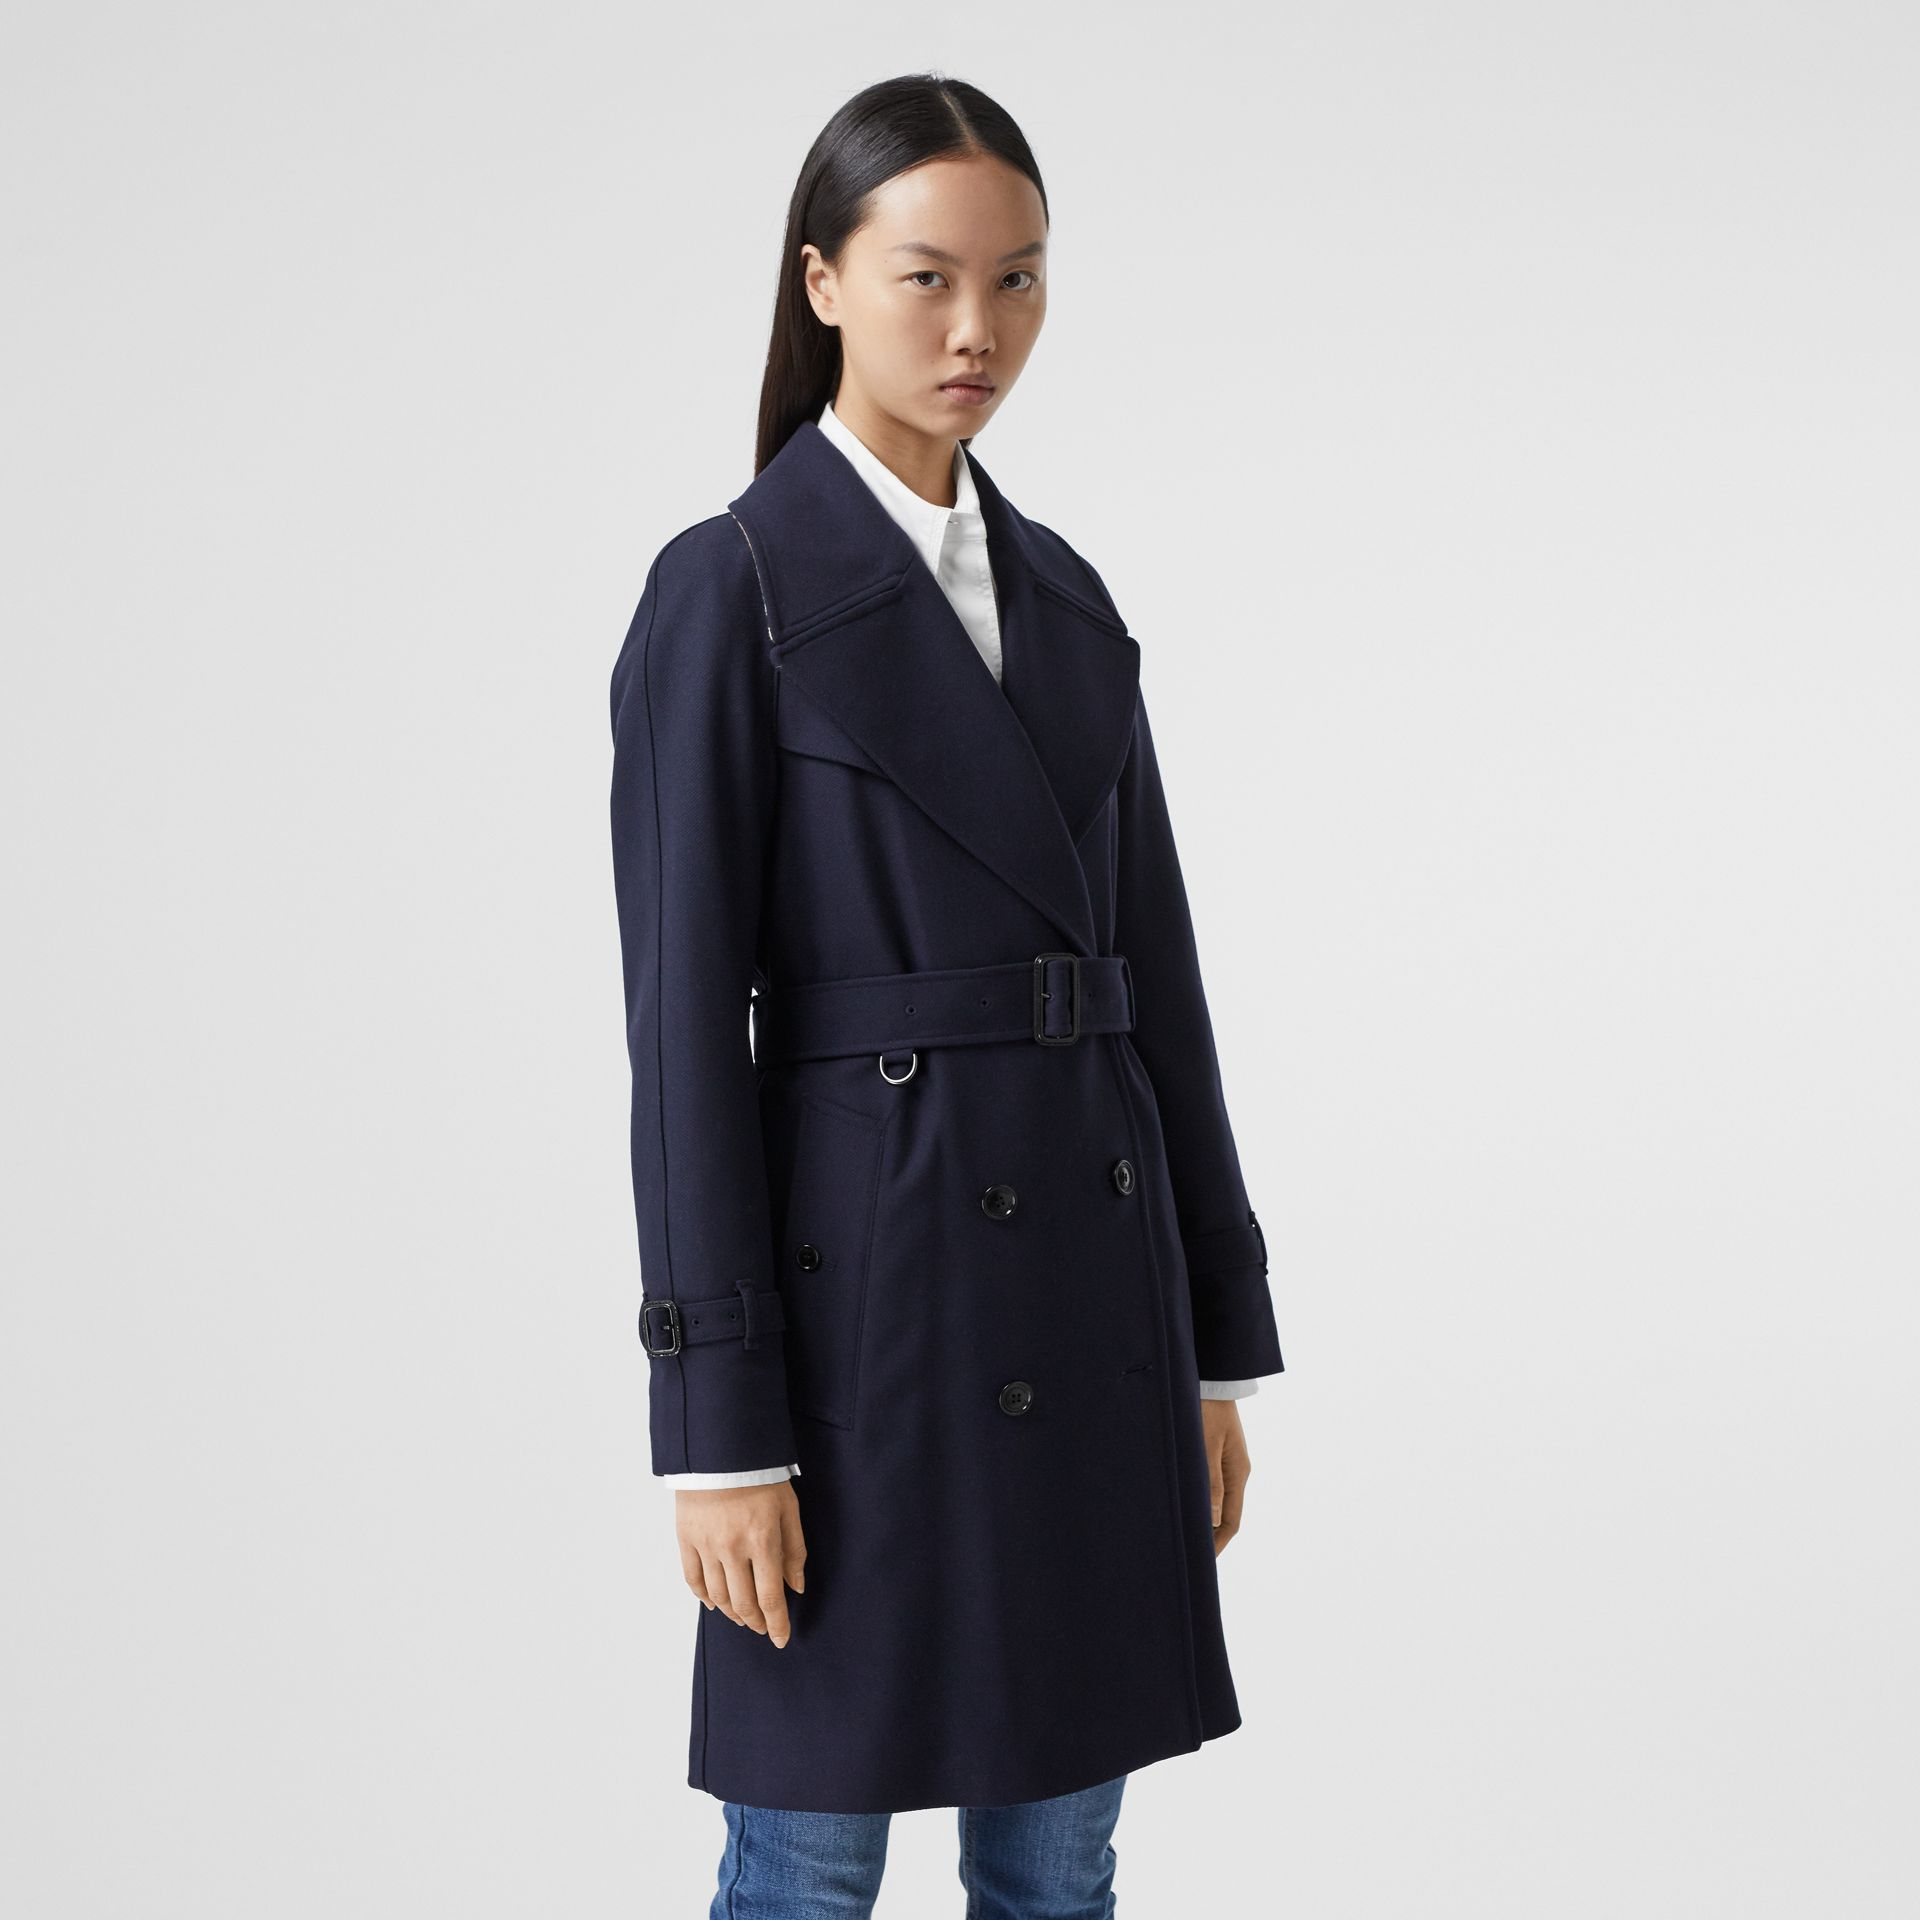 Herringbone Wool Cashmere Blend Trench Coat in Navy - Women | Burberry - gallery image 6